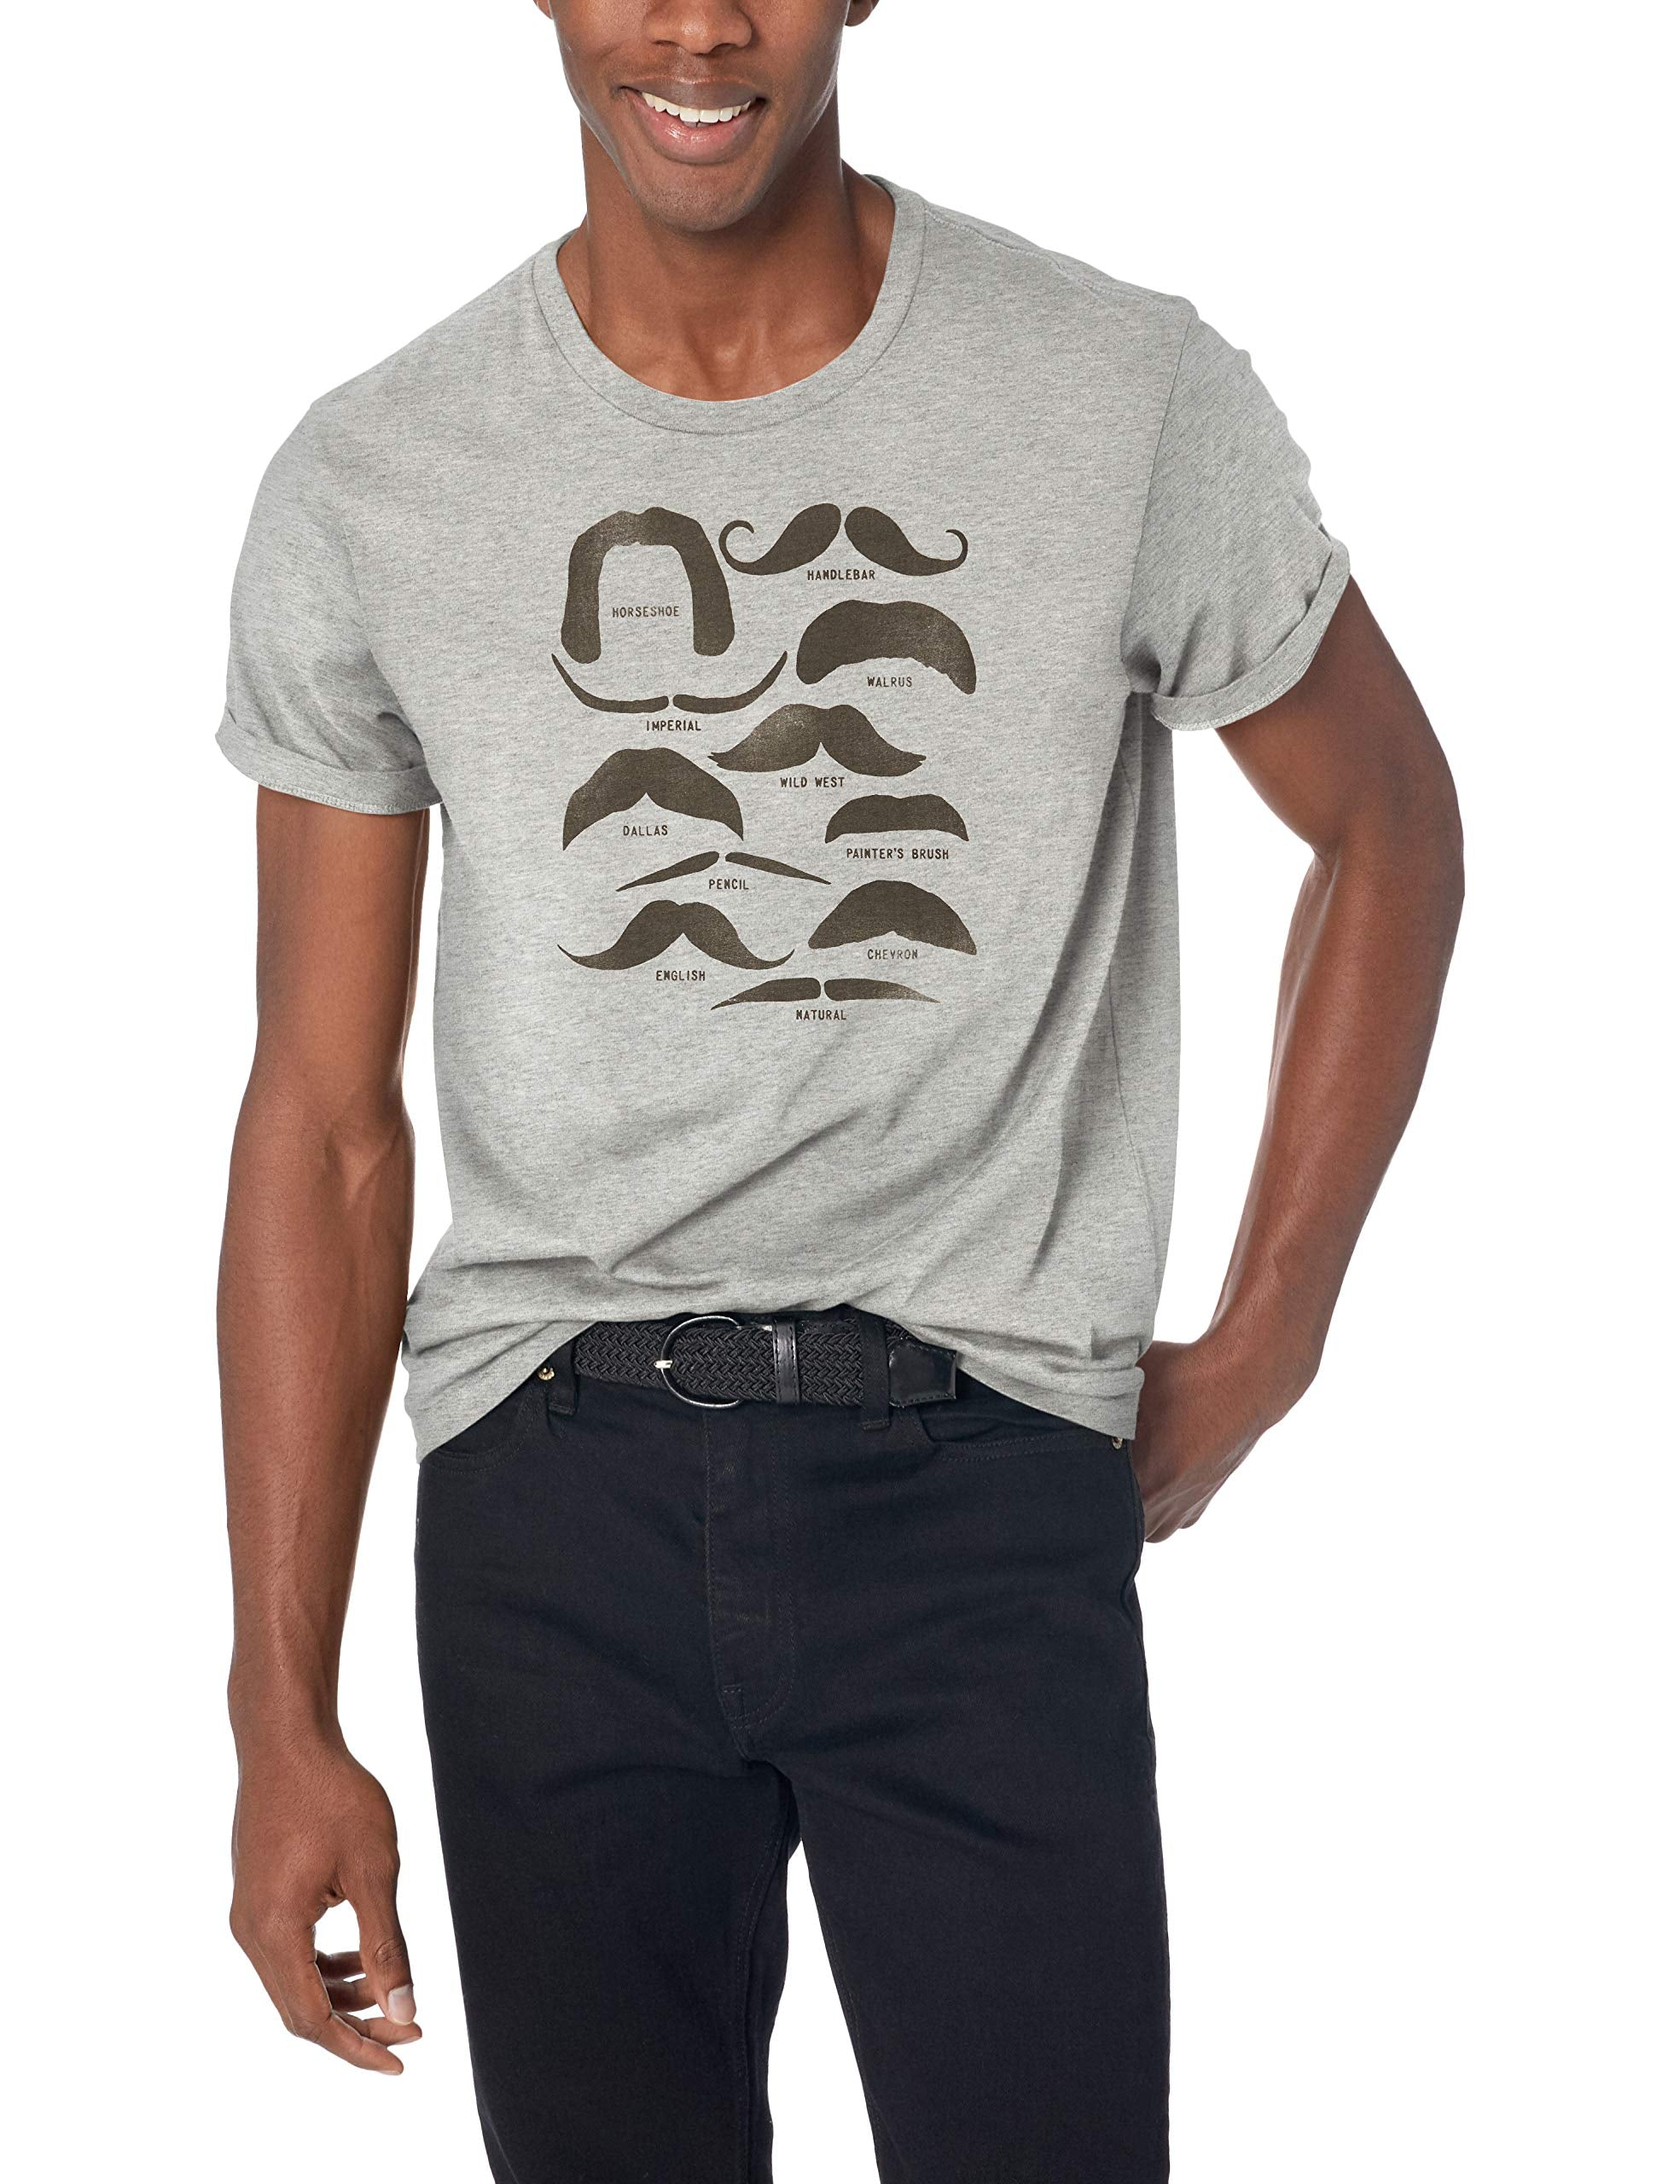 J.Crew Mercantile Mustache Graphic T-Shirt